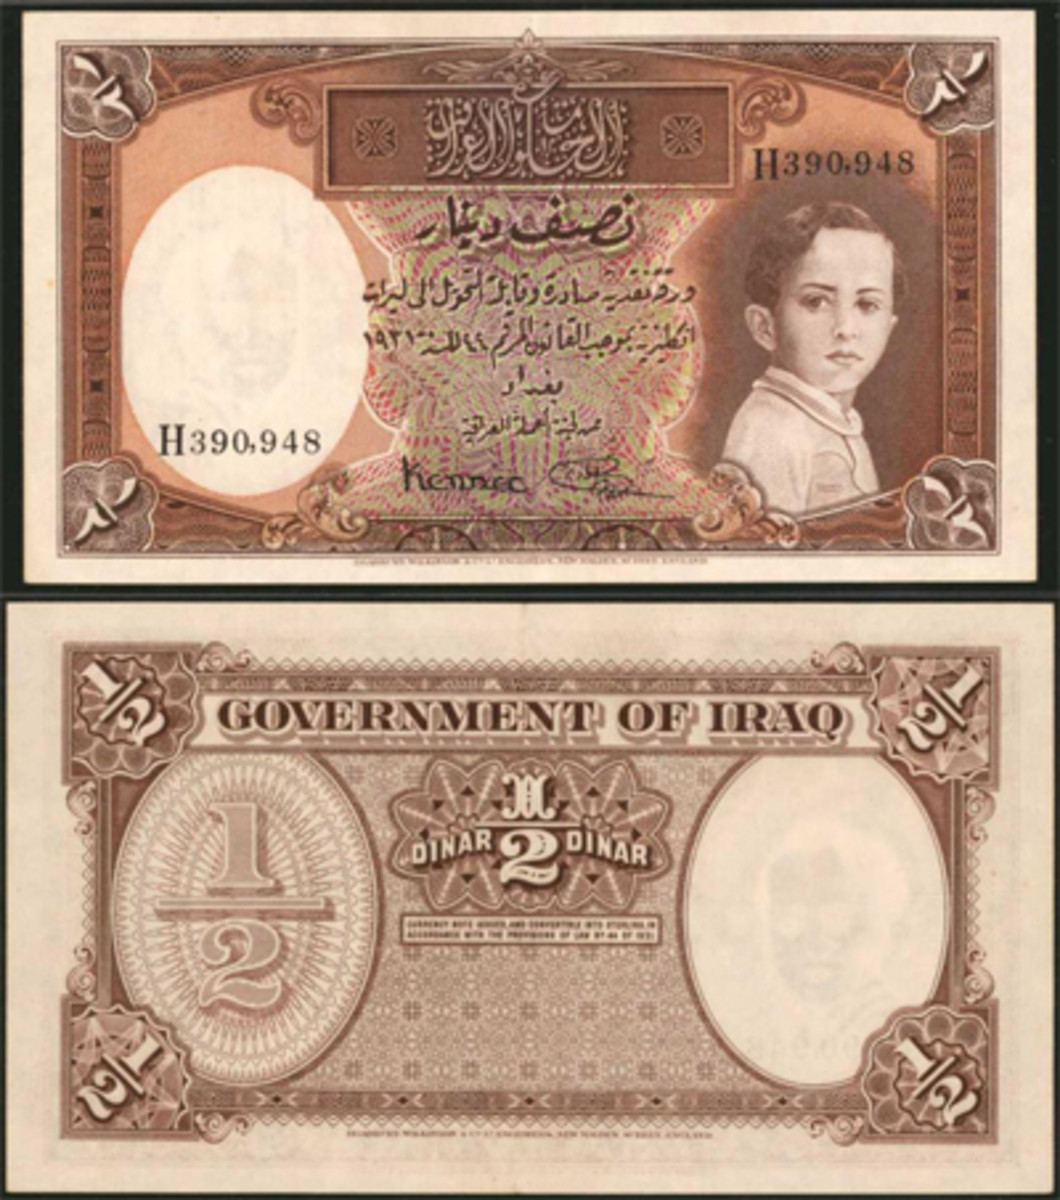 Lot #30282 was a 1931 (ND 1935) Iraq Government of Iraq half dinar. Graded PMG AU-55 EPQ, this note featured the signatures of Lord Kennet and Shakir al Wadi. It sold slightly below estimate at $9,000.